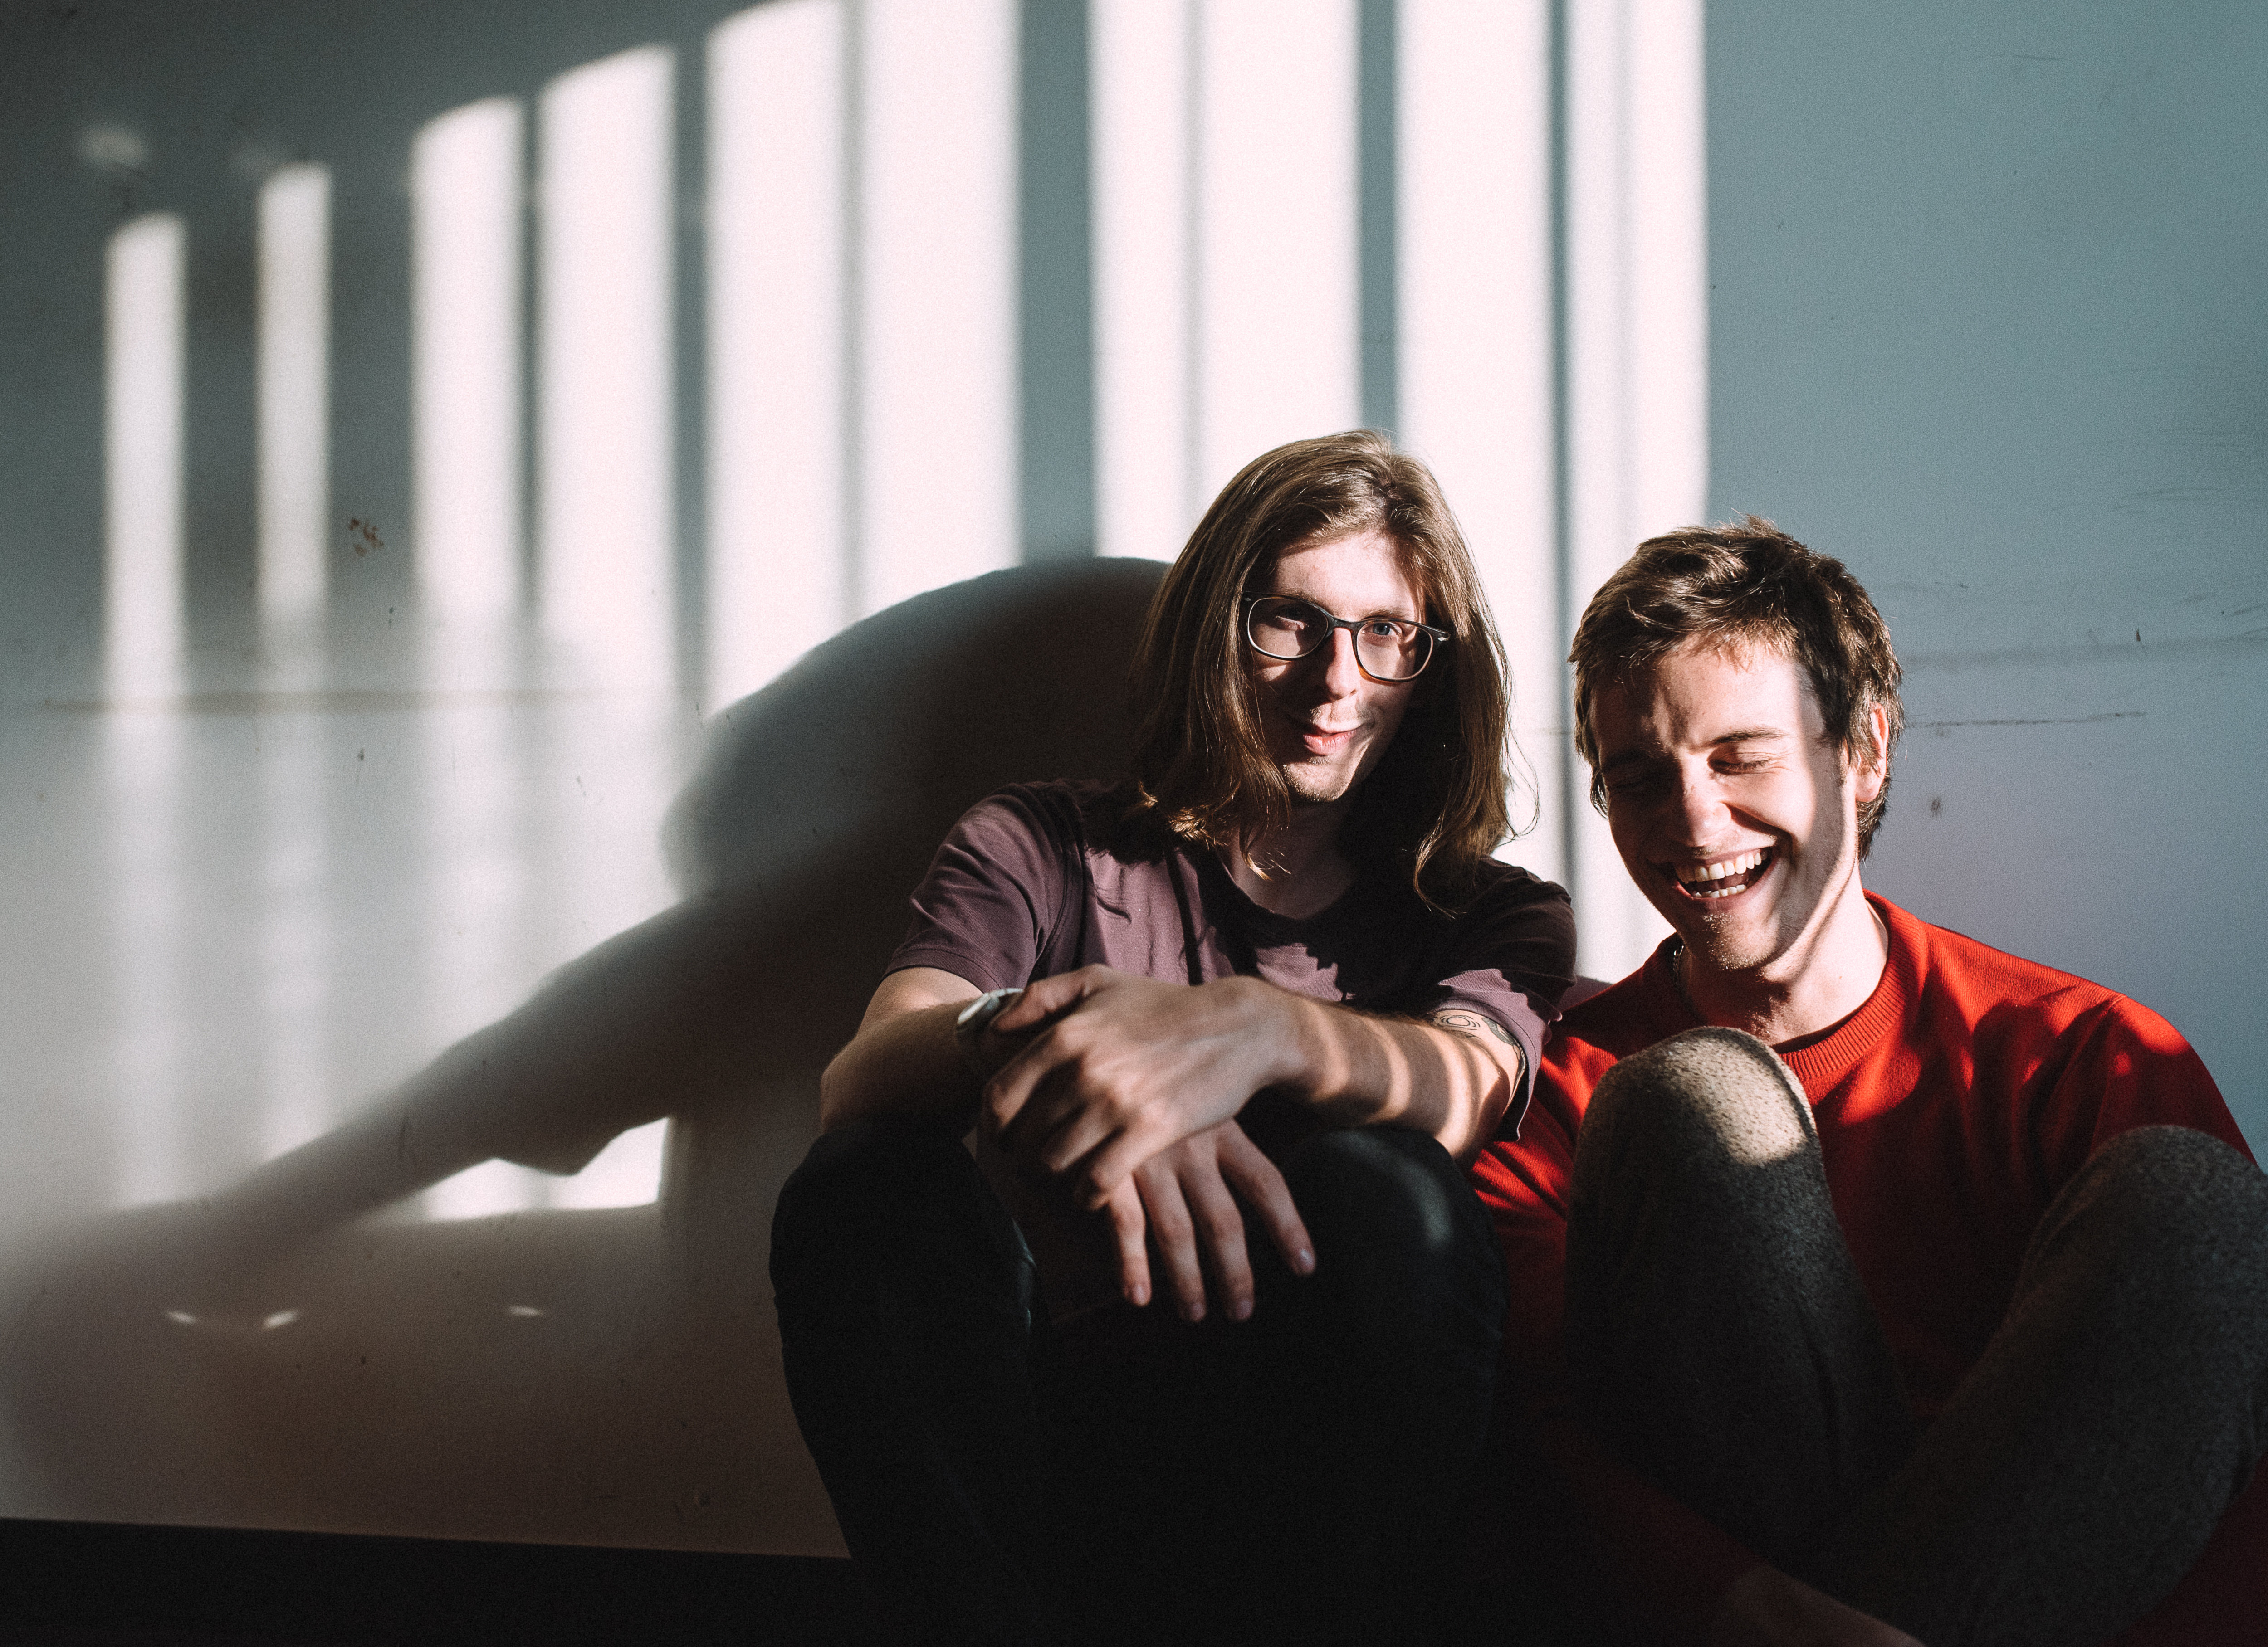 Indie rock duo, Vundabar, is hitting the Central Coast on March 28th with Ratboys providing musical support.